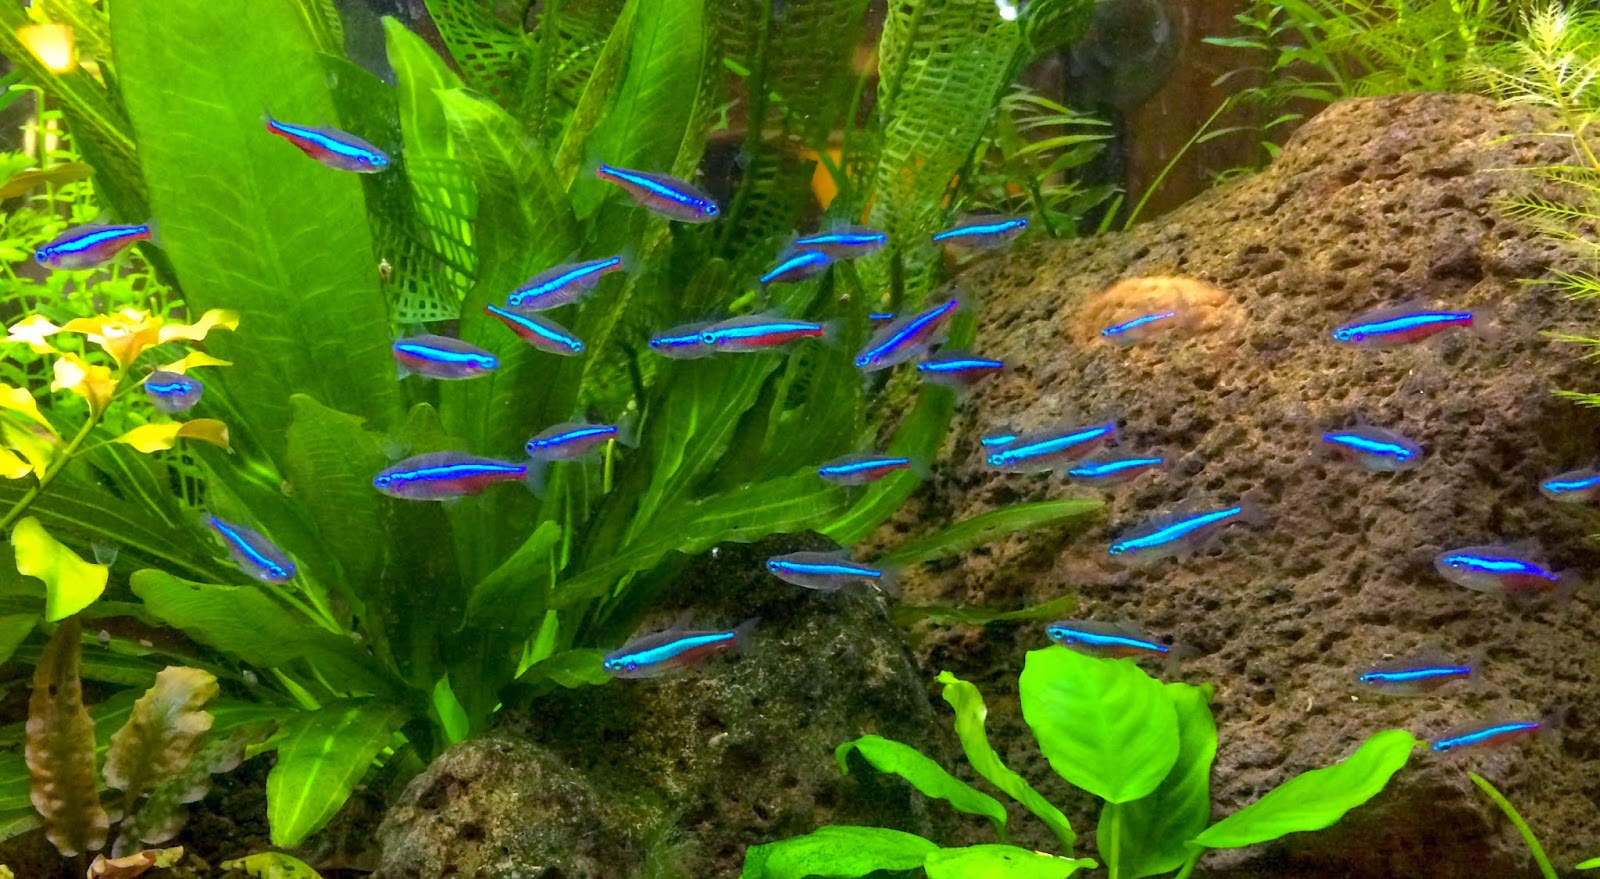 Blok888 top 10 most beautiful freshwater fish in the world 2 for Colorful freshwater aquarium fish